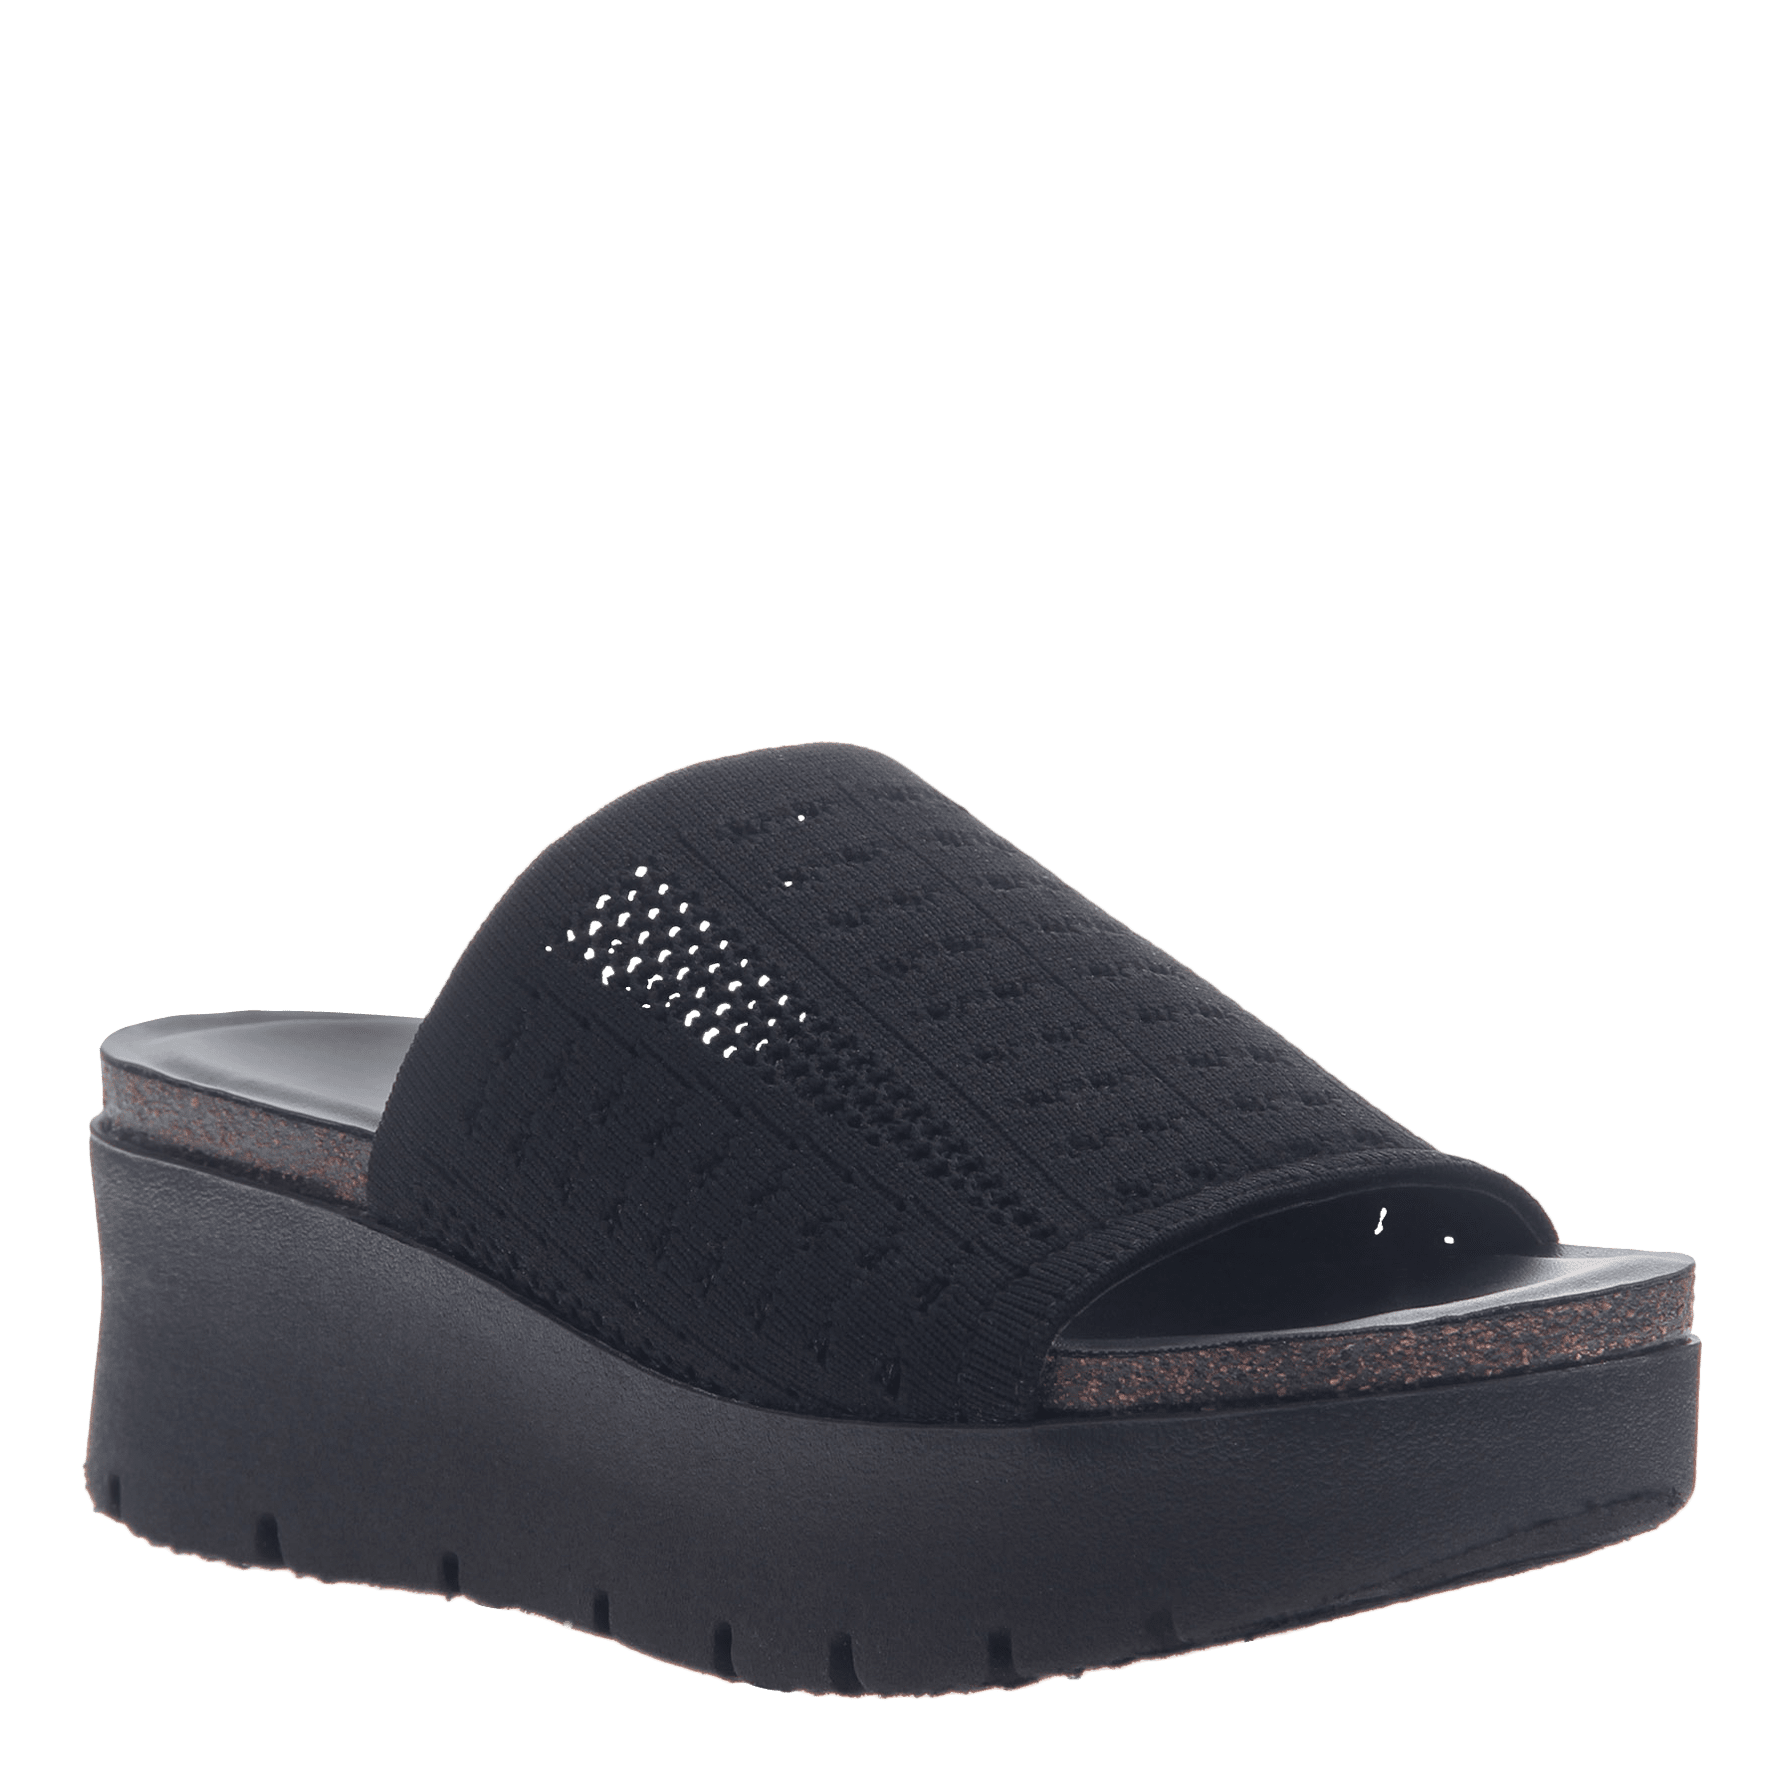 2d467b55f0 Gravity in Black Wedge Sandals | Women's Shoes by OTBT